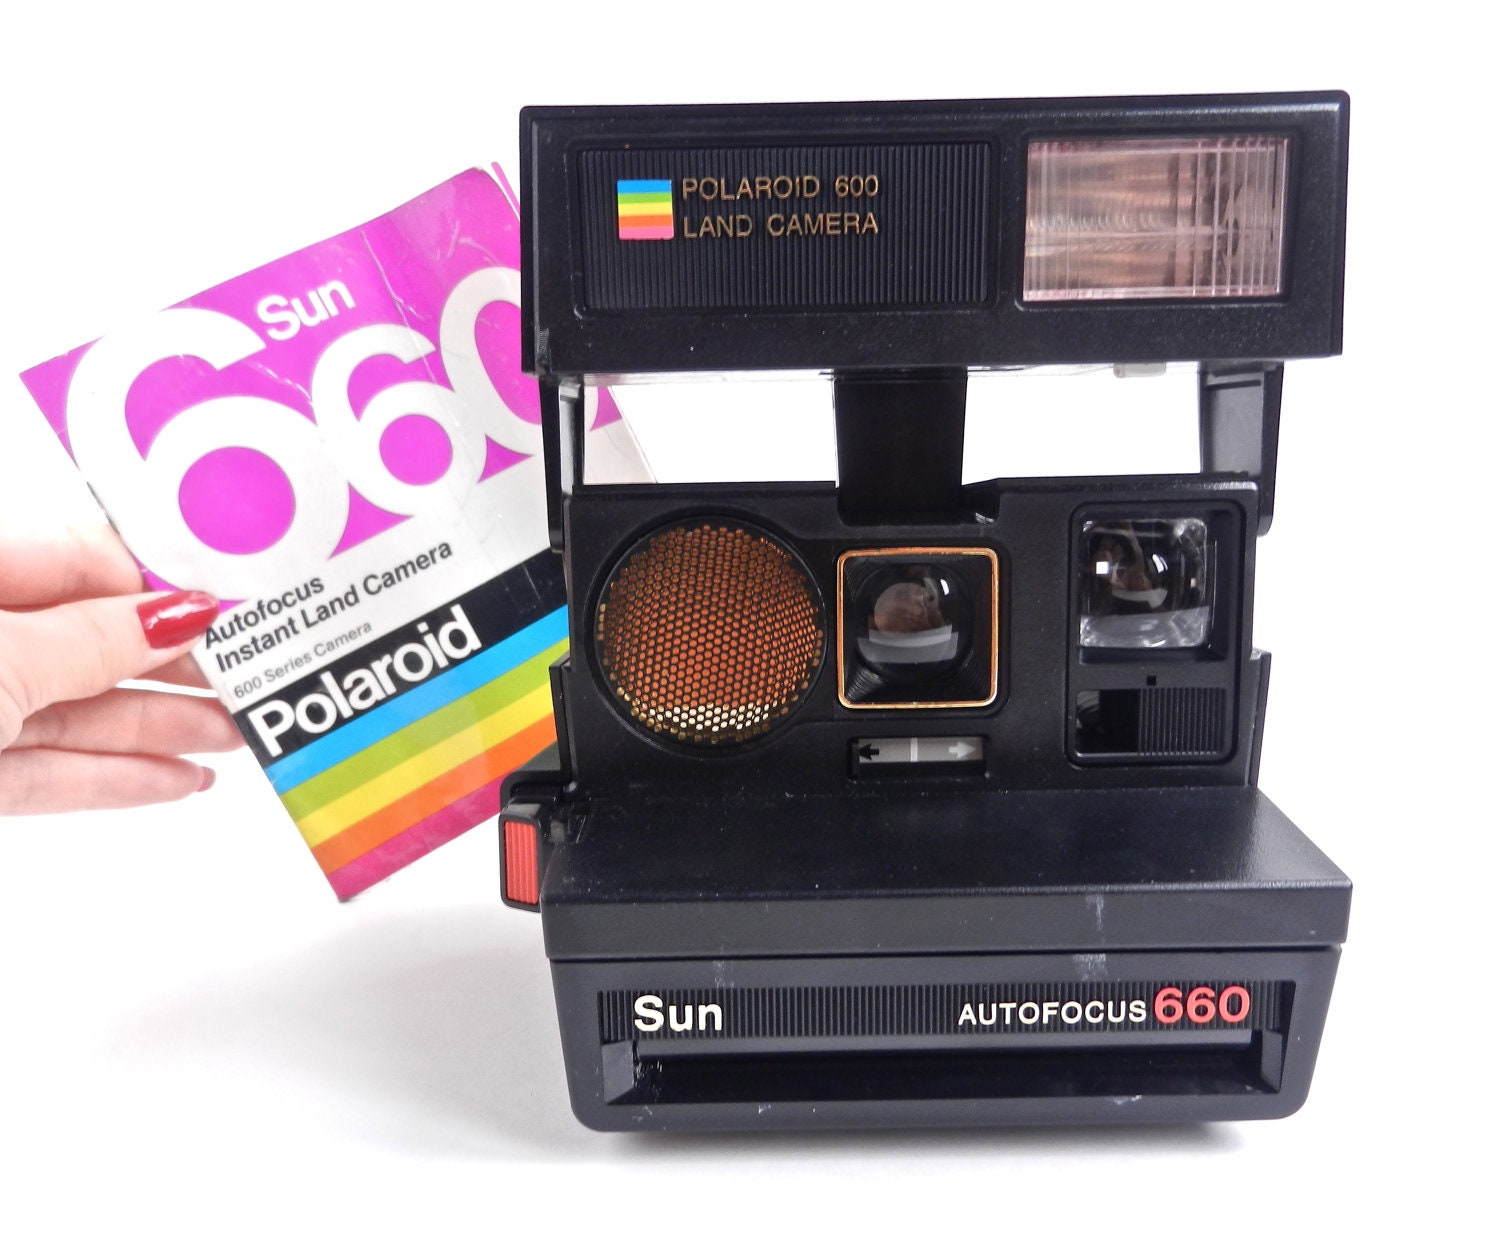 vintage polaroid camera polaroid sun 660 autofocus with. Black Bedroom Furniture Sets. Home Design Ideas